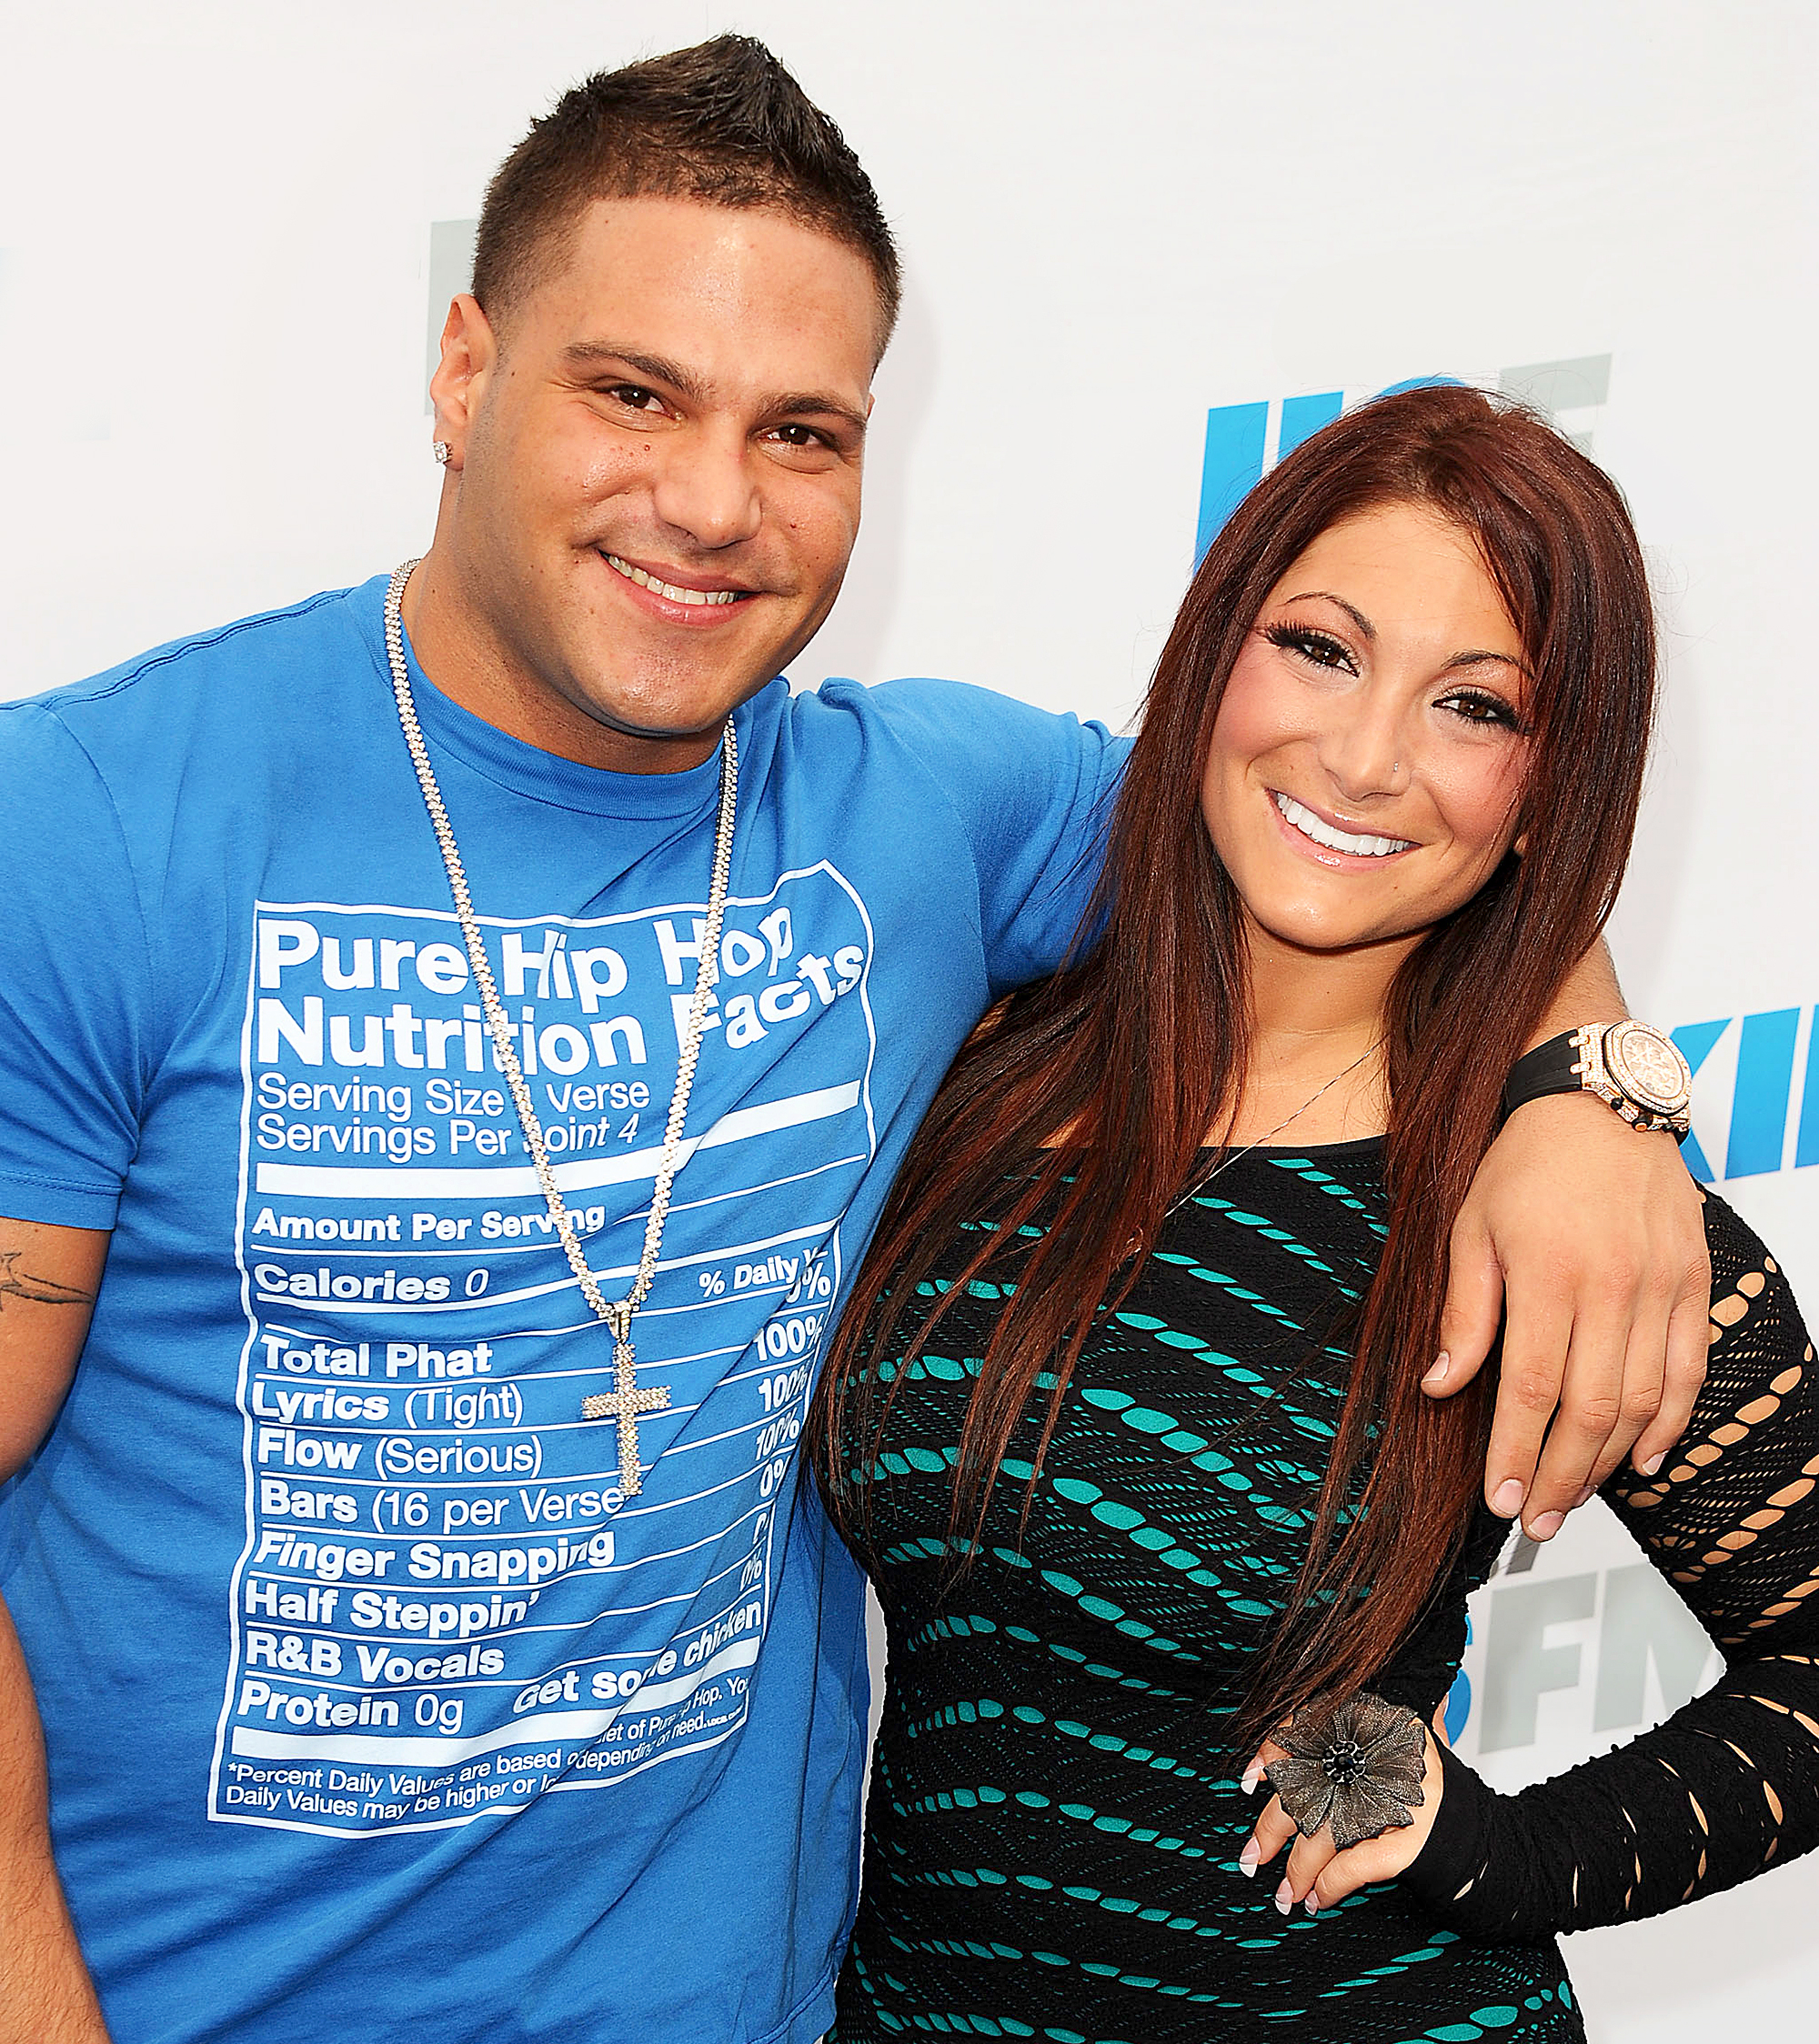 Ronnie Ortiz-Magro and Deena Nicole Cortese